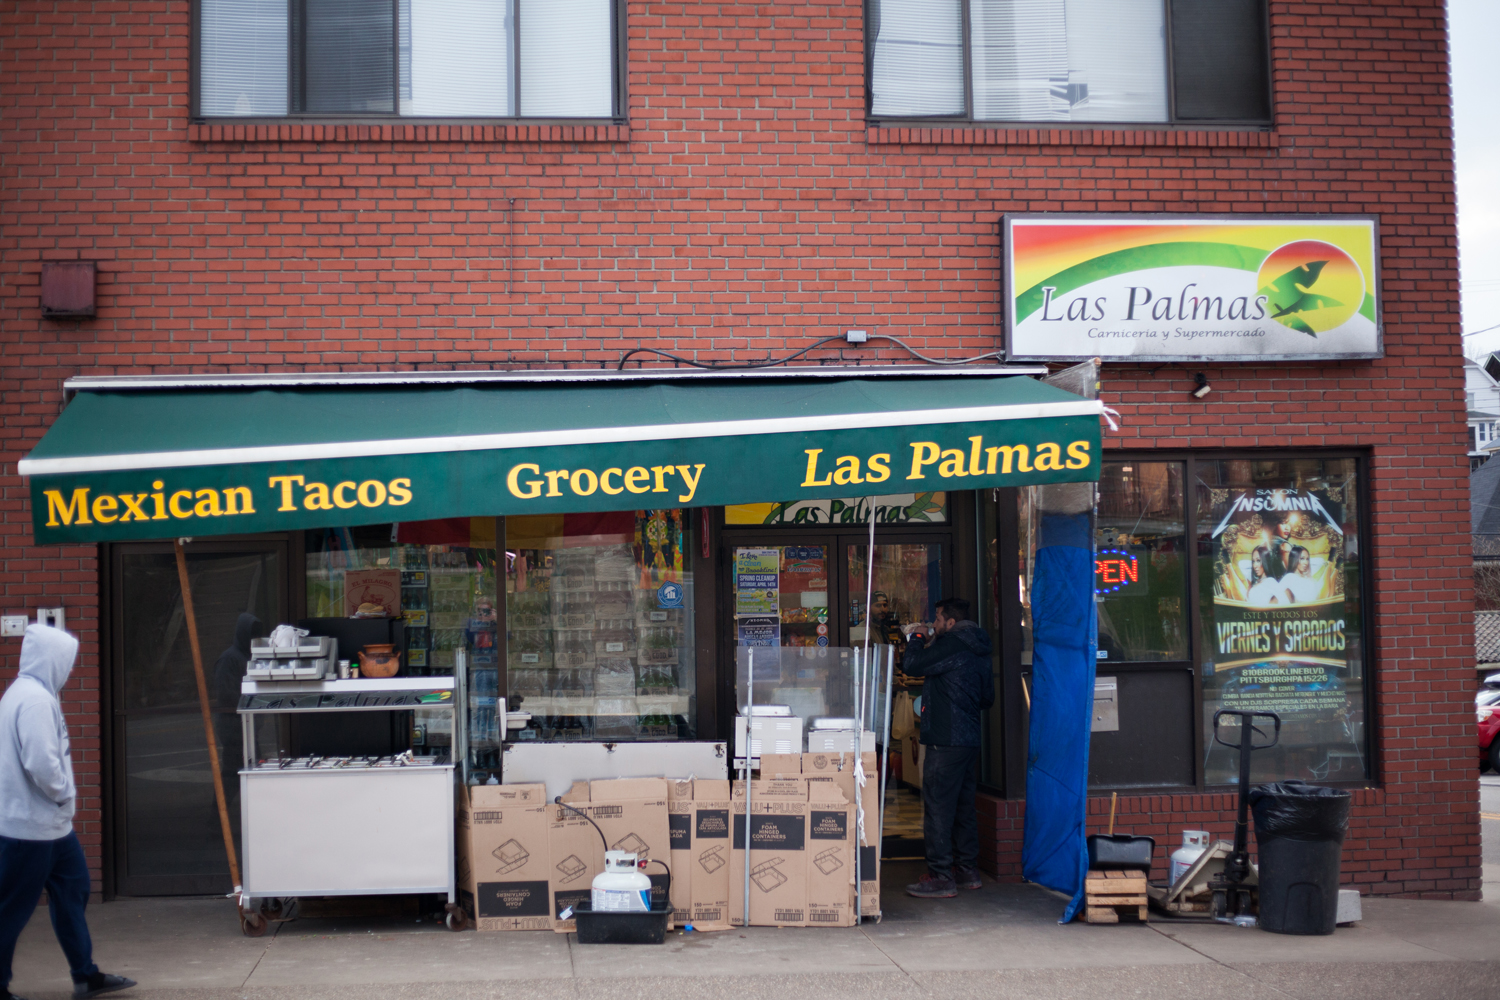 The Oakland location of Las Palmas, which has another location pictured here, been cited by the Allegheny County Health Department in its most recent inspection for the presence of live and dead roaches throughout the store.